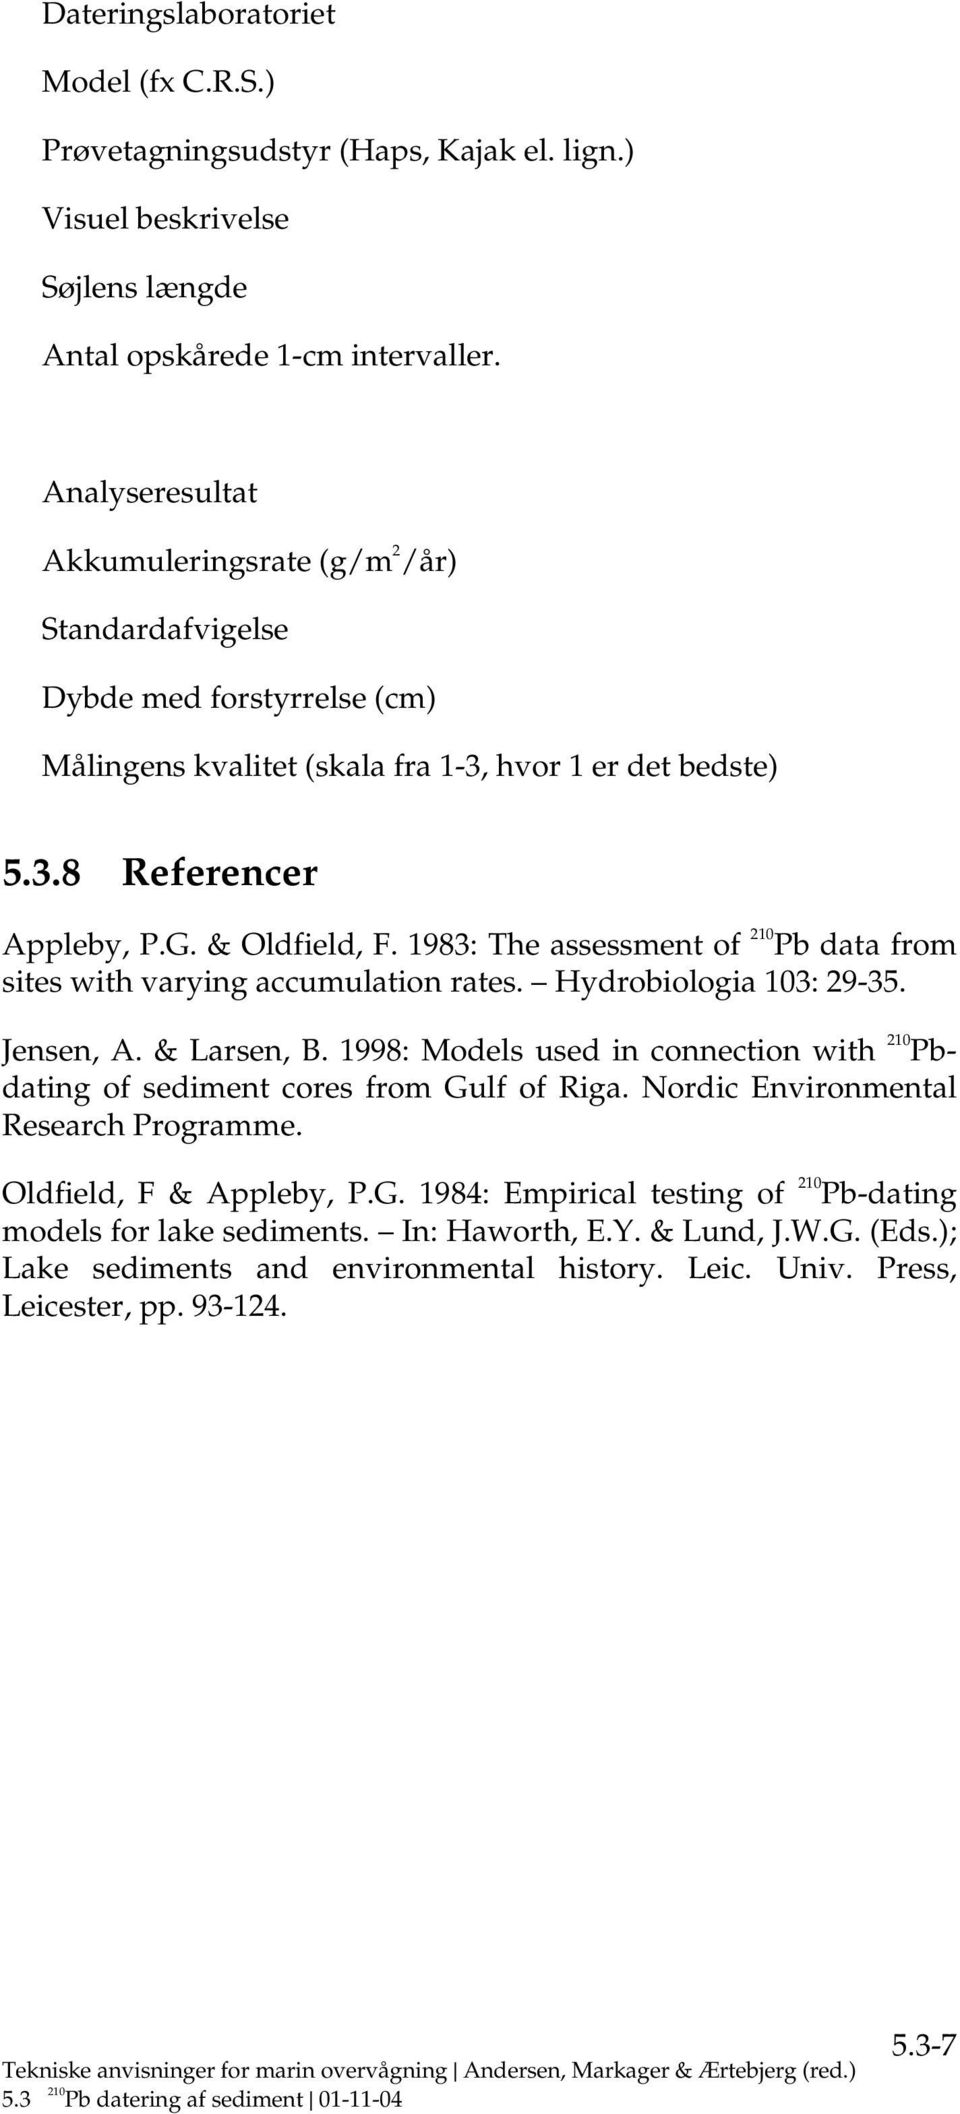 1983: The assessment of Pb data from sites with varying accumulation rates. Hydrobiologia 103: 29-35. Jensen, A. & Larsen, B.